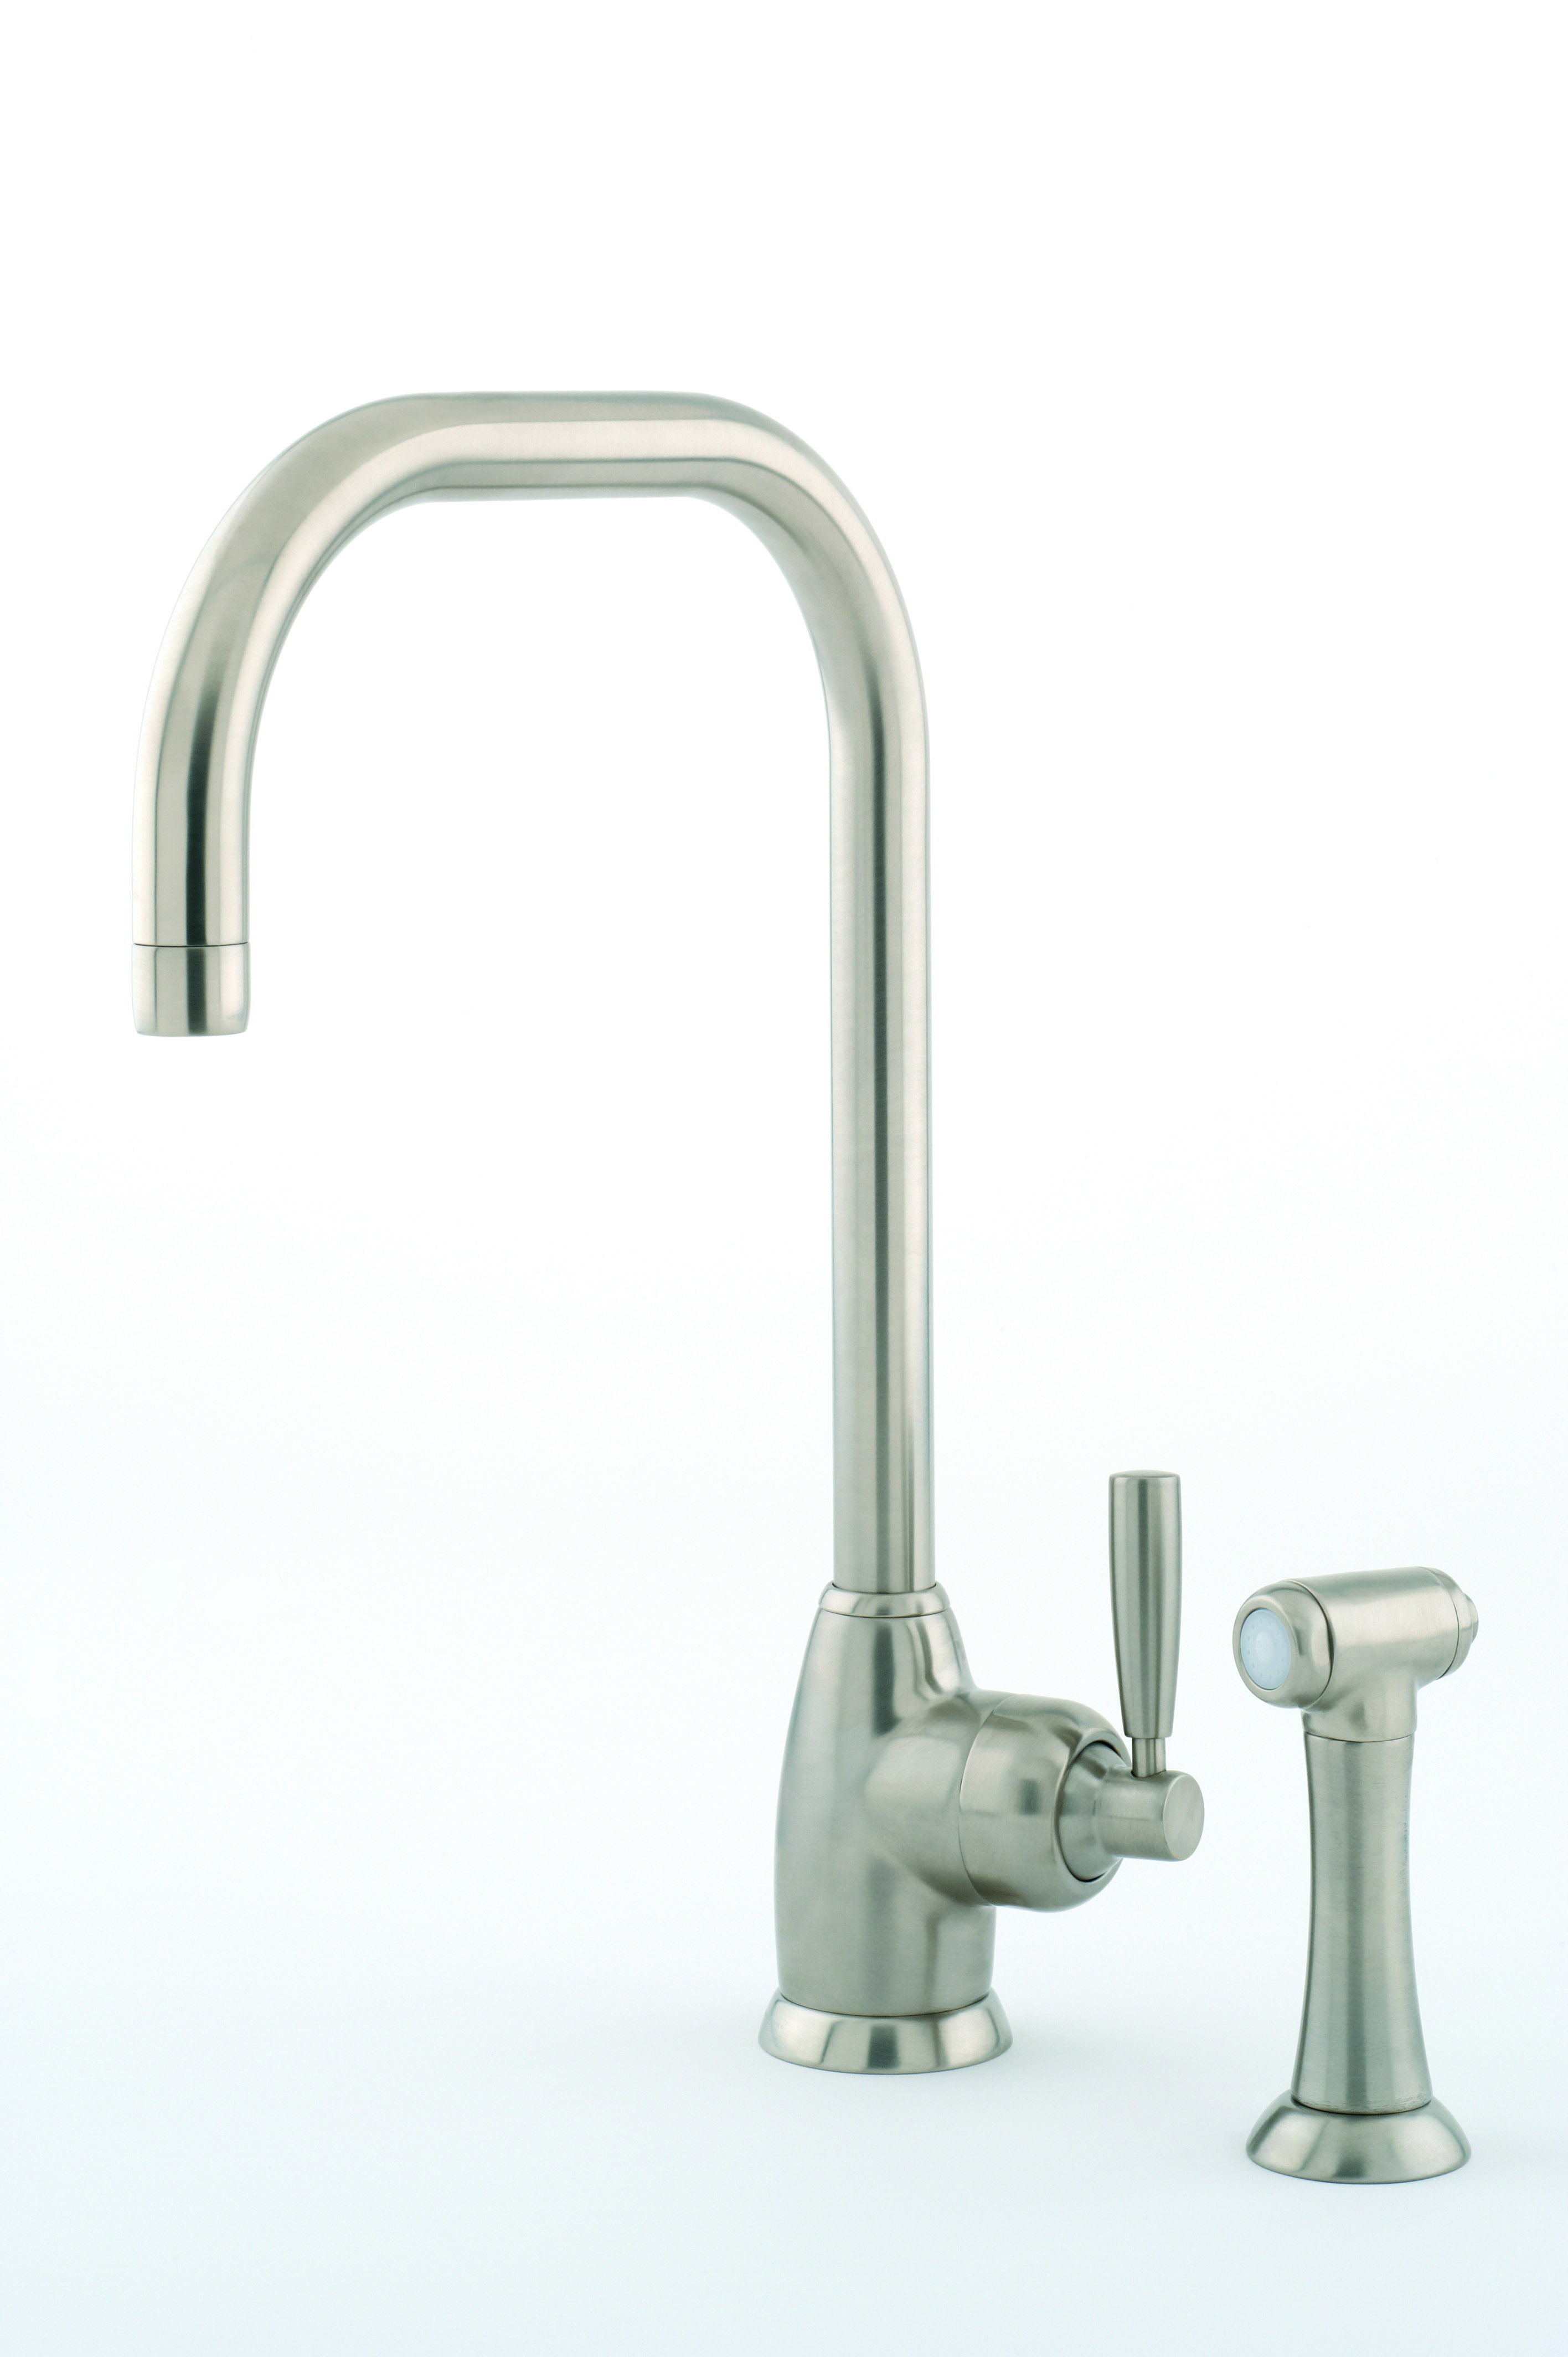 Perrin & Rowe Mimas Single Lever Sink Mixer with U Spout and Rinse ...